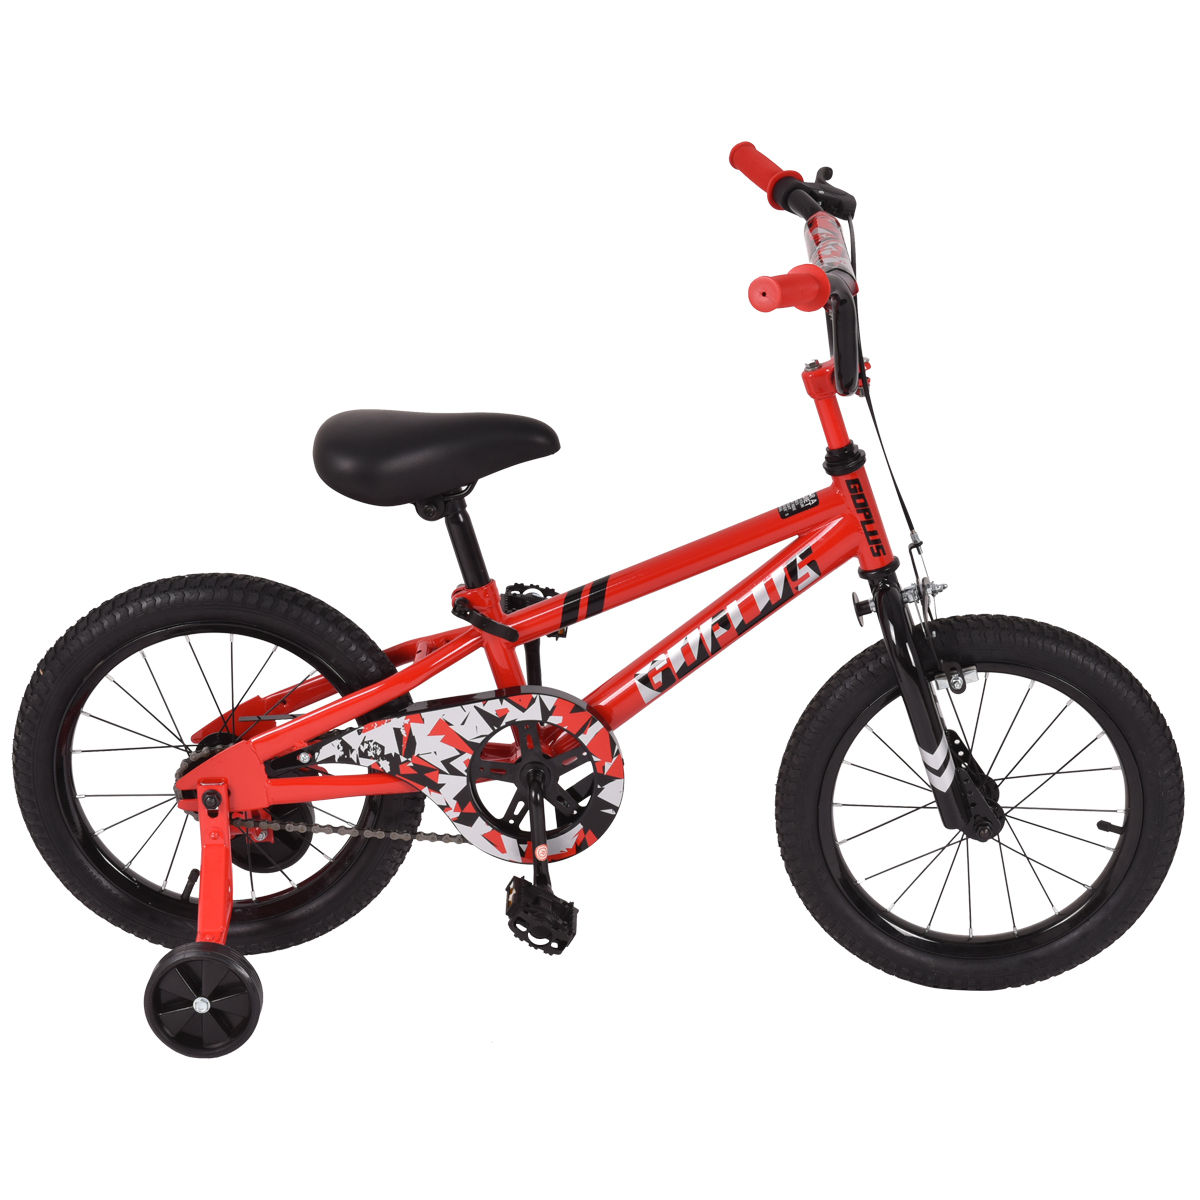 Find great deals on eBay for walmart bicycle. Shop with confidence.